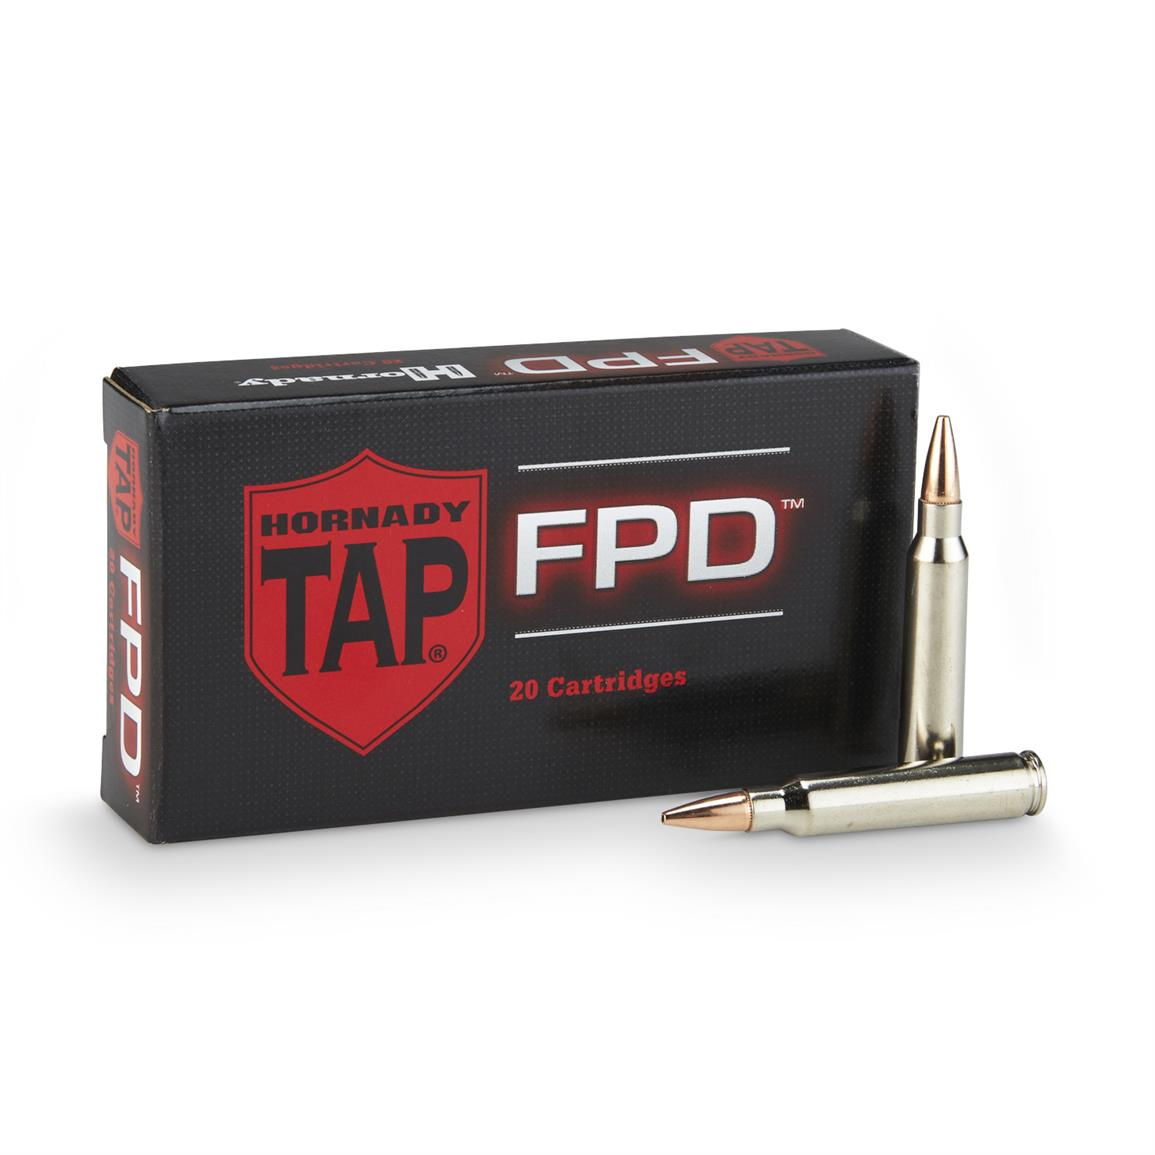 Hornady® Tap™ Rifle .223 Rem.® 75 Grain TAP-FPD 20 rounds